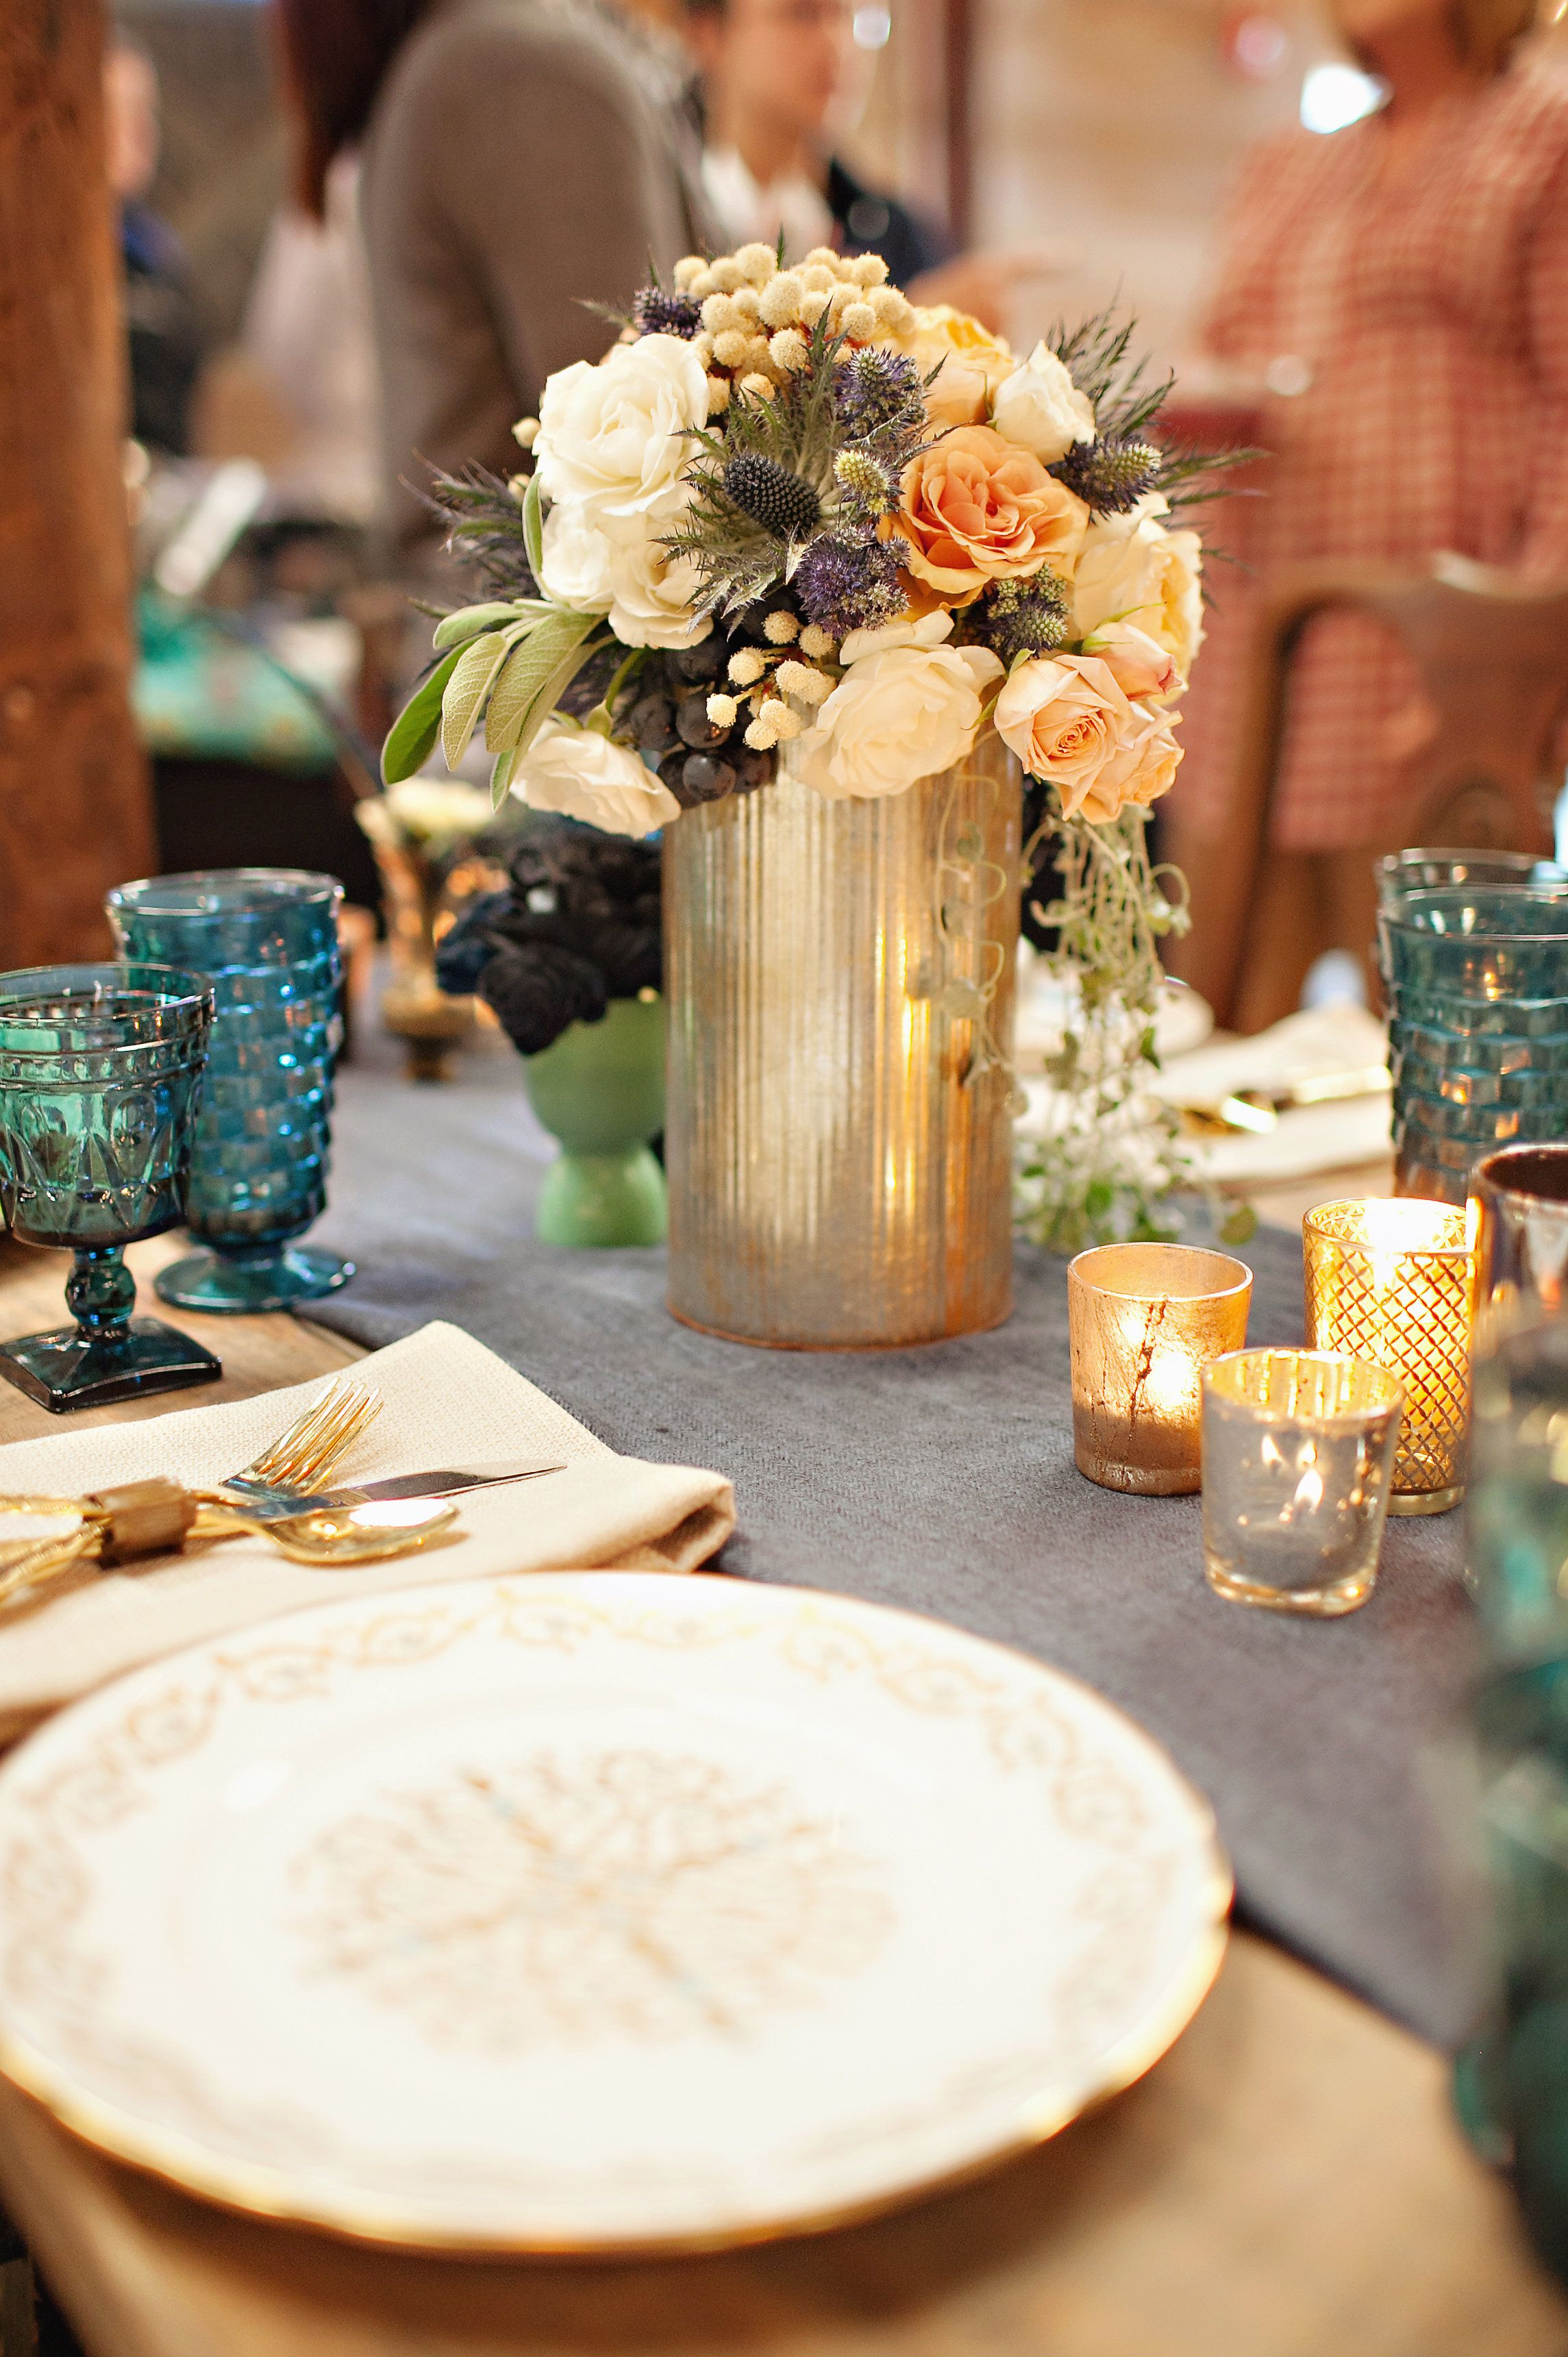 Steam punk flare mixed with vintage china for a unique wedding reception or event table setting-  styled by Jennifer Hopkins with Virtu Floral and Event Design with Southern Vintage china, stemware and gold flatware. Vinewood Weddings and Events. Paperlily Photography